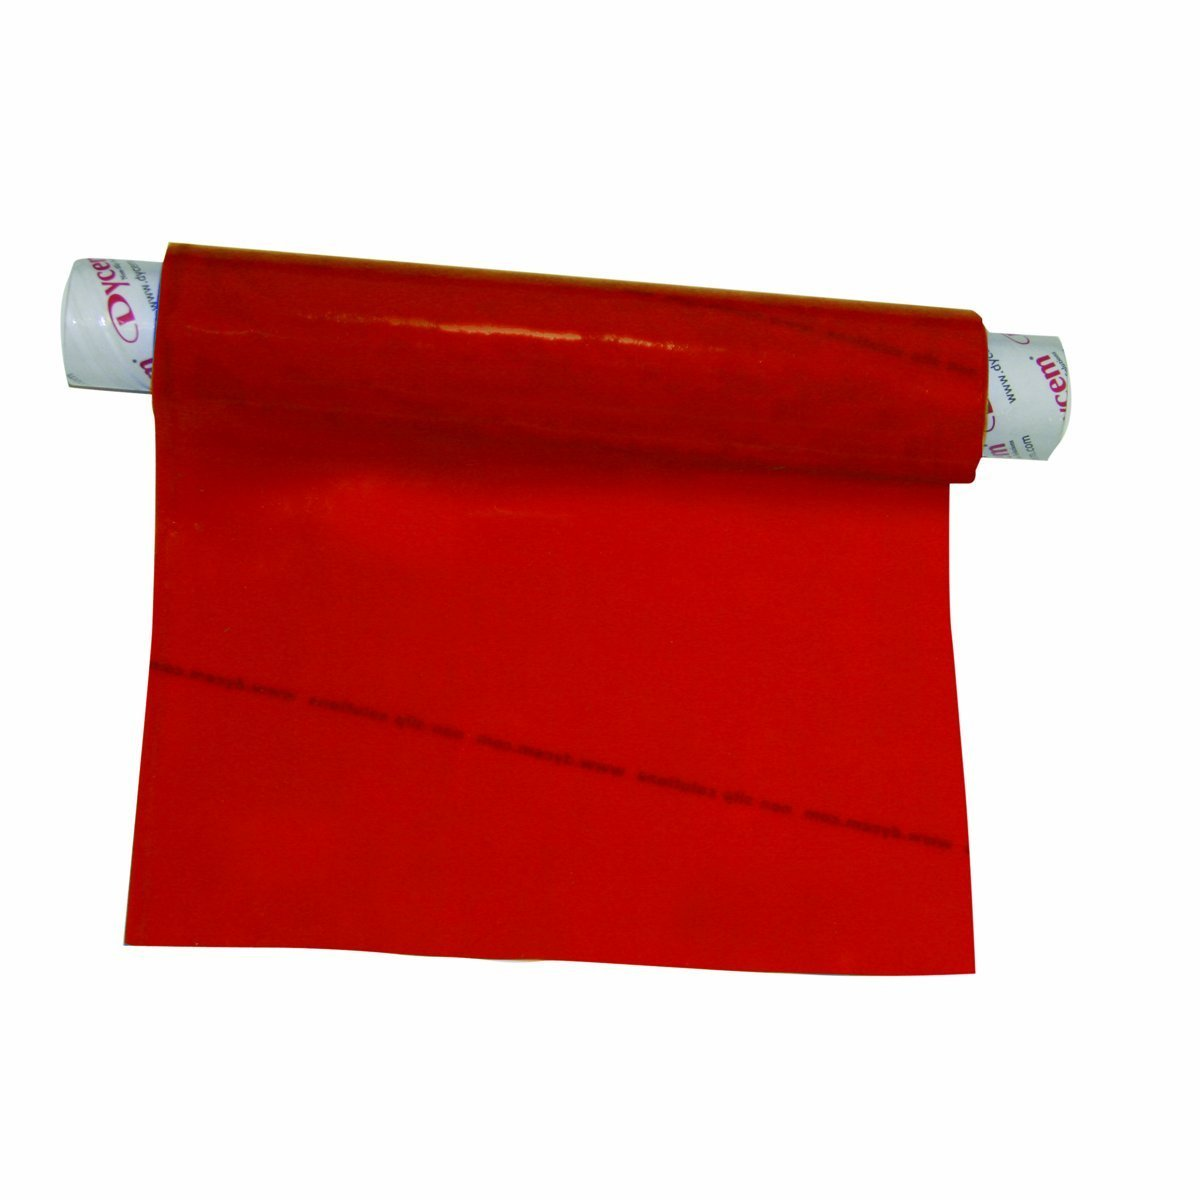 North Coast Medical NC35100-1 Dycem Roll 8in x 1yd x 3/32in Red